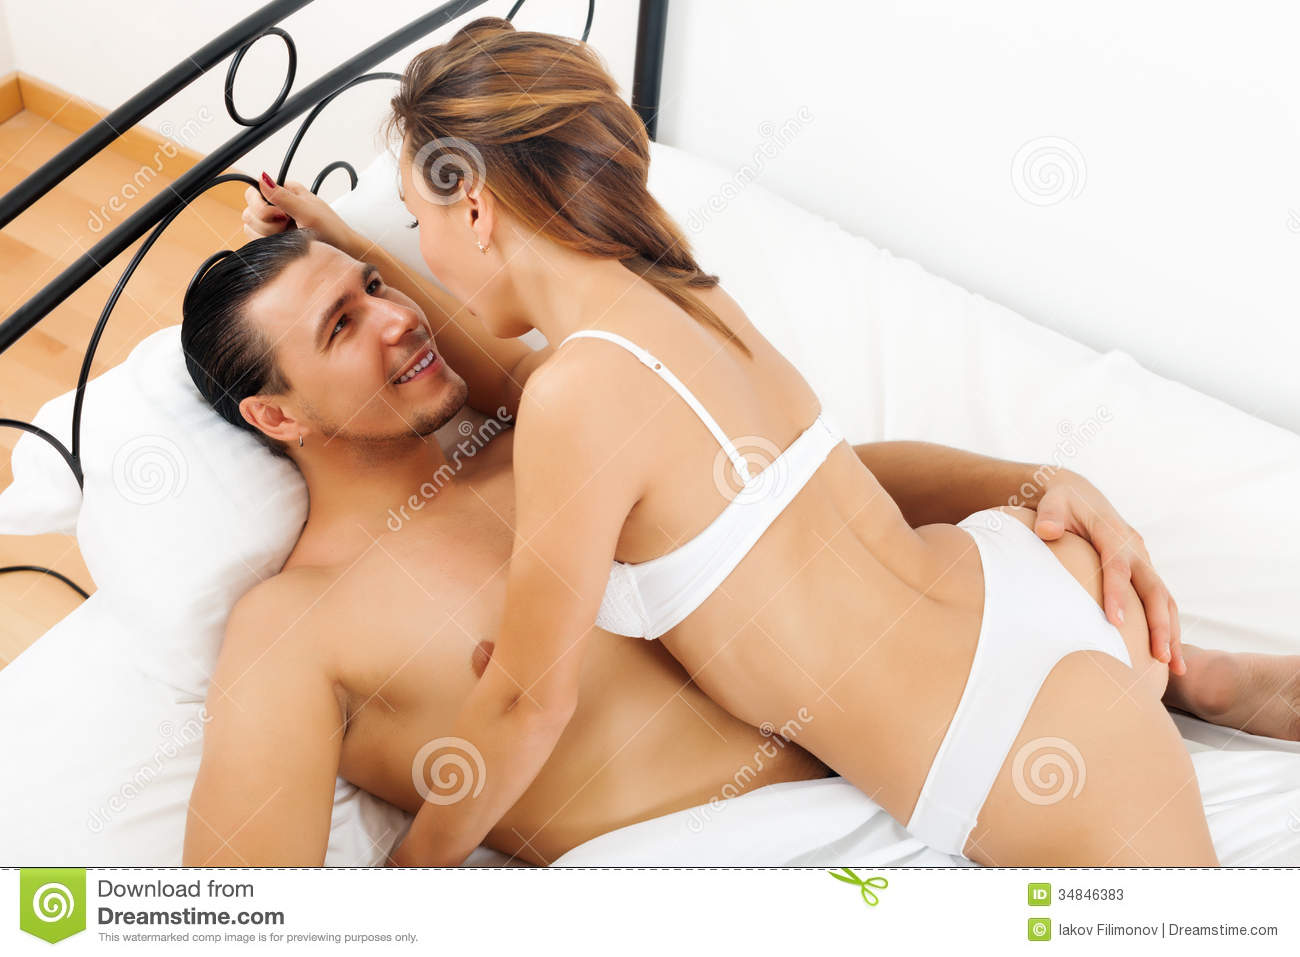 Male And Female Having Sex In Bed